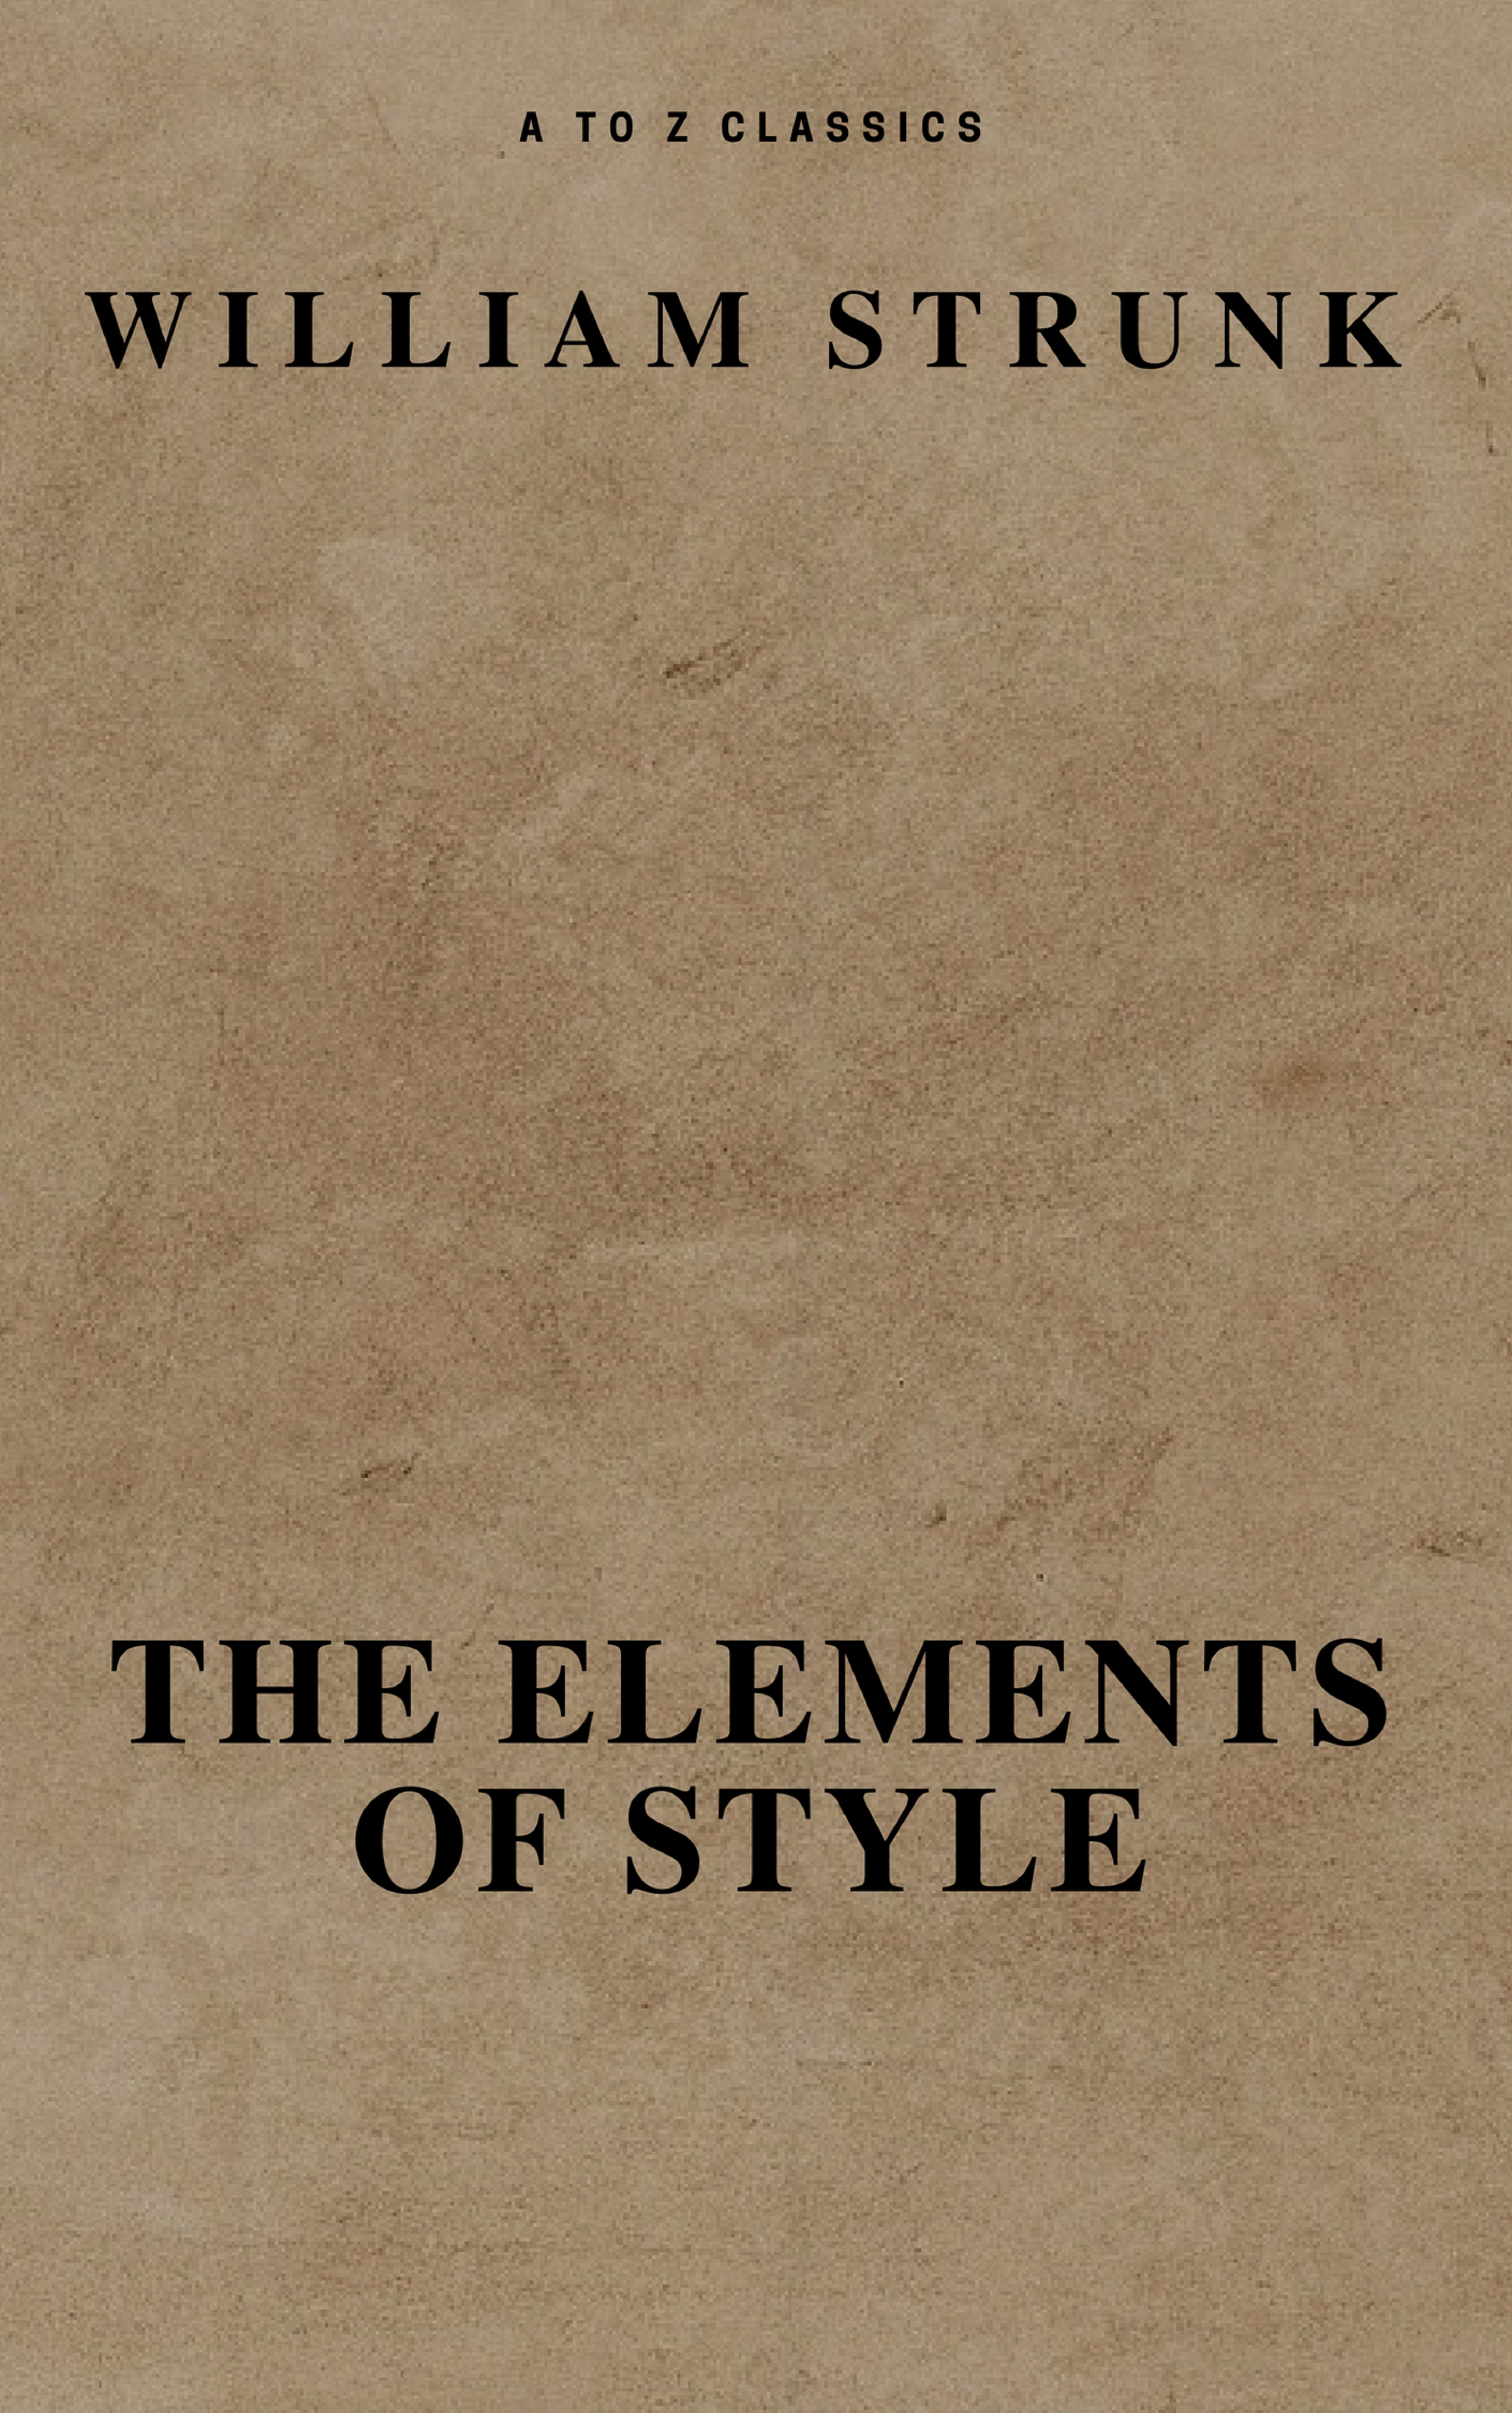 William Strunk The Elements of Style ( Fourth Edition ) ( A to Z Classics) o strunk source rdgs v 2 – renaissance